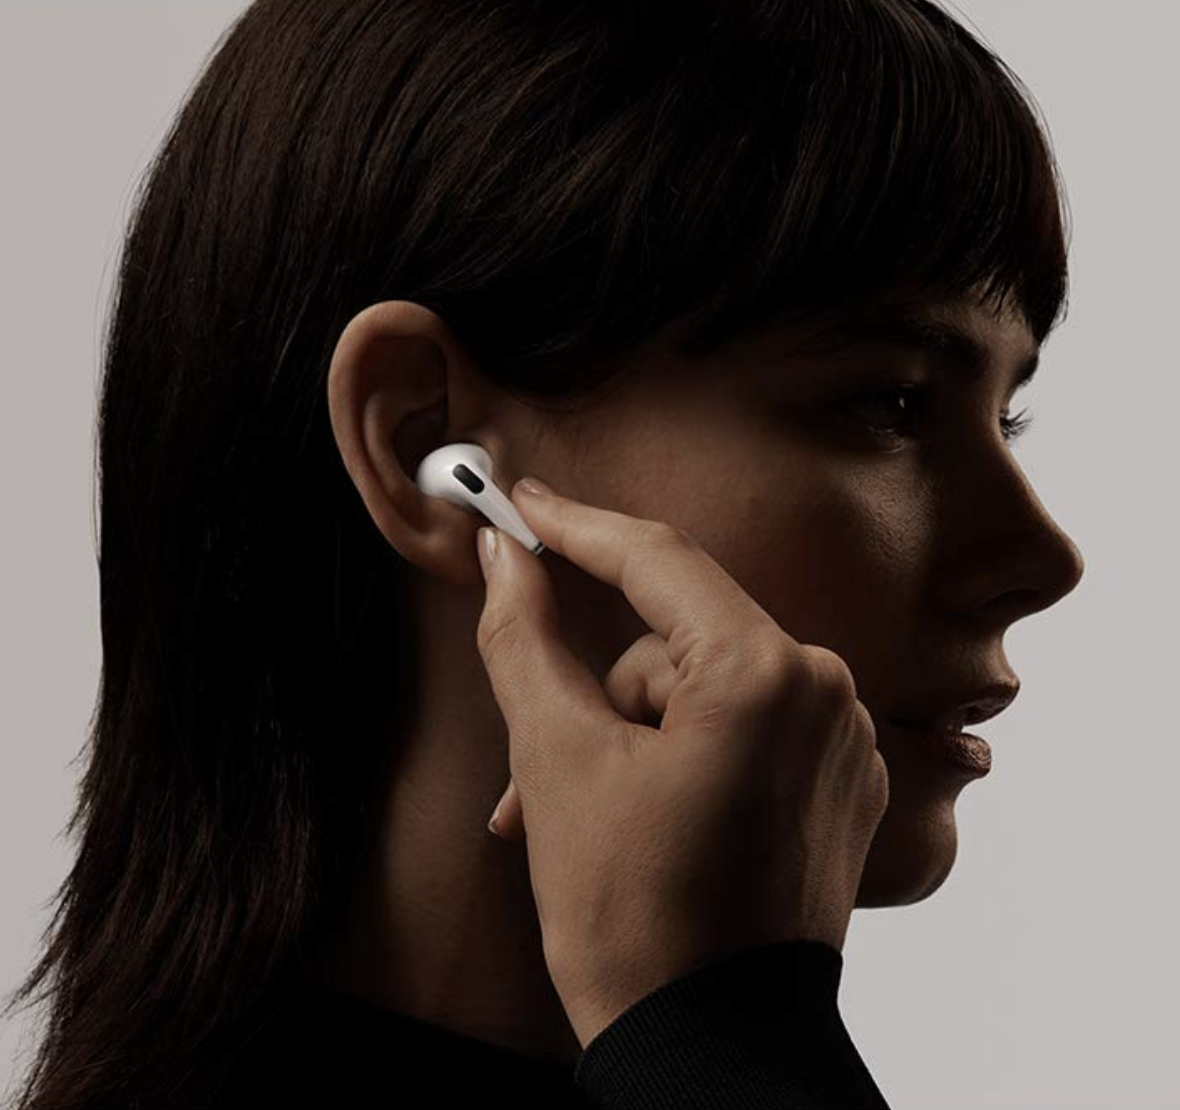 Model putting white AIrPods Pro earbud into ear